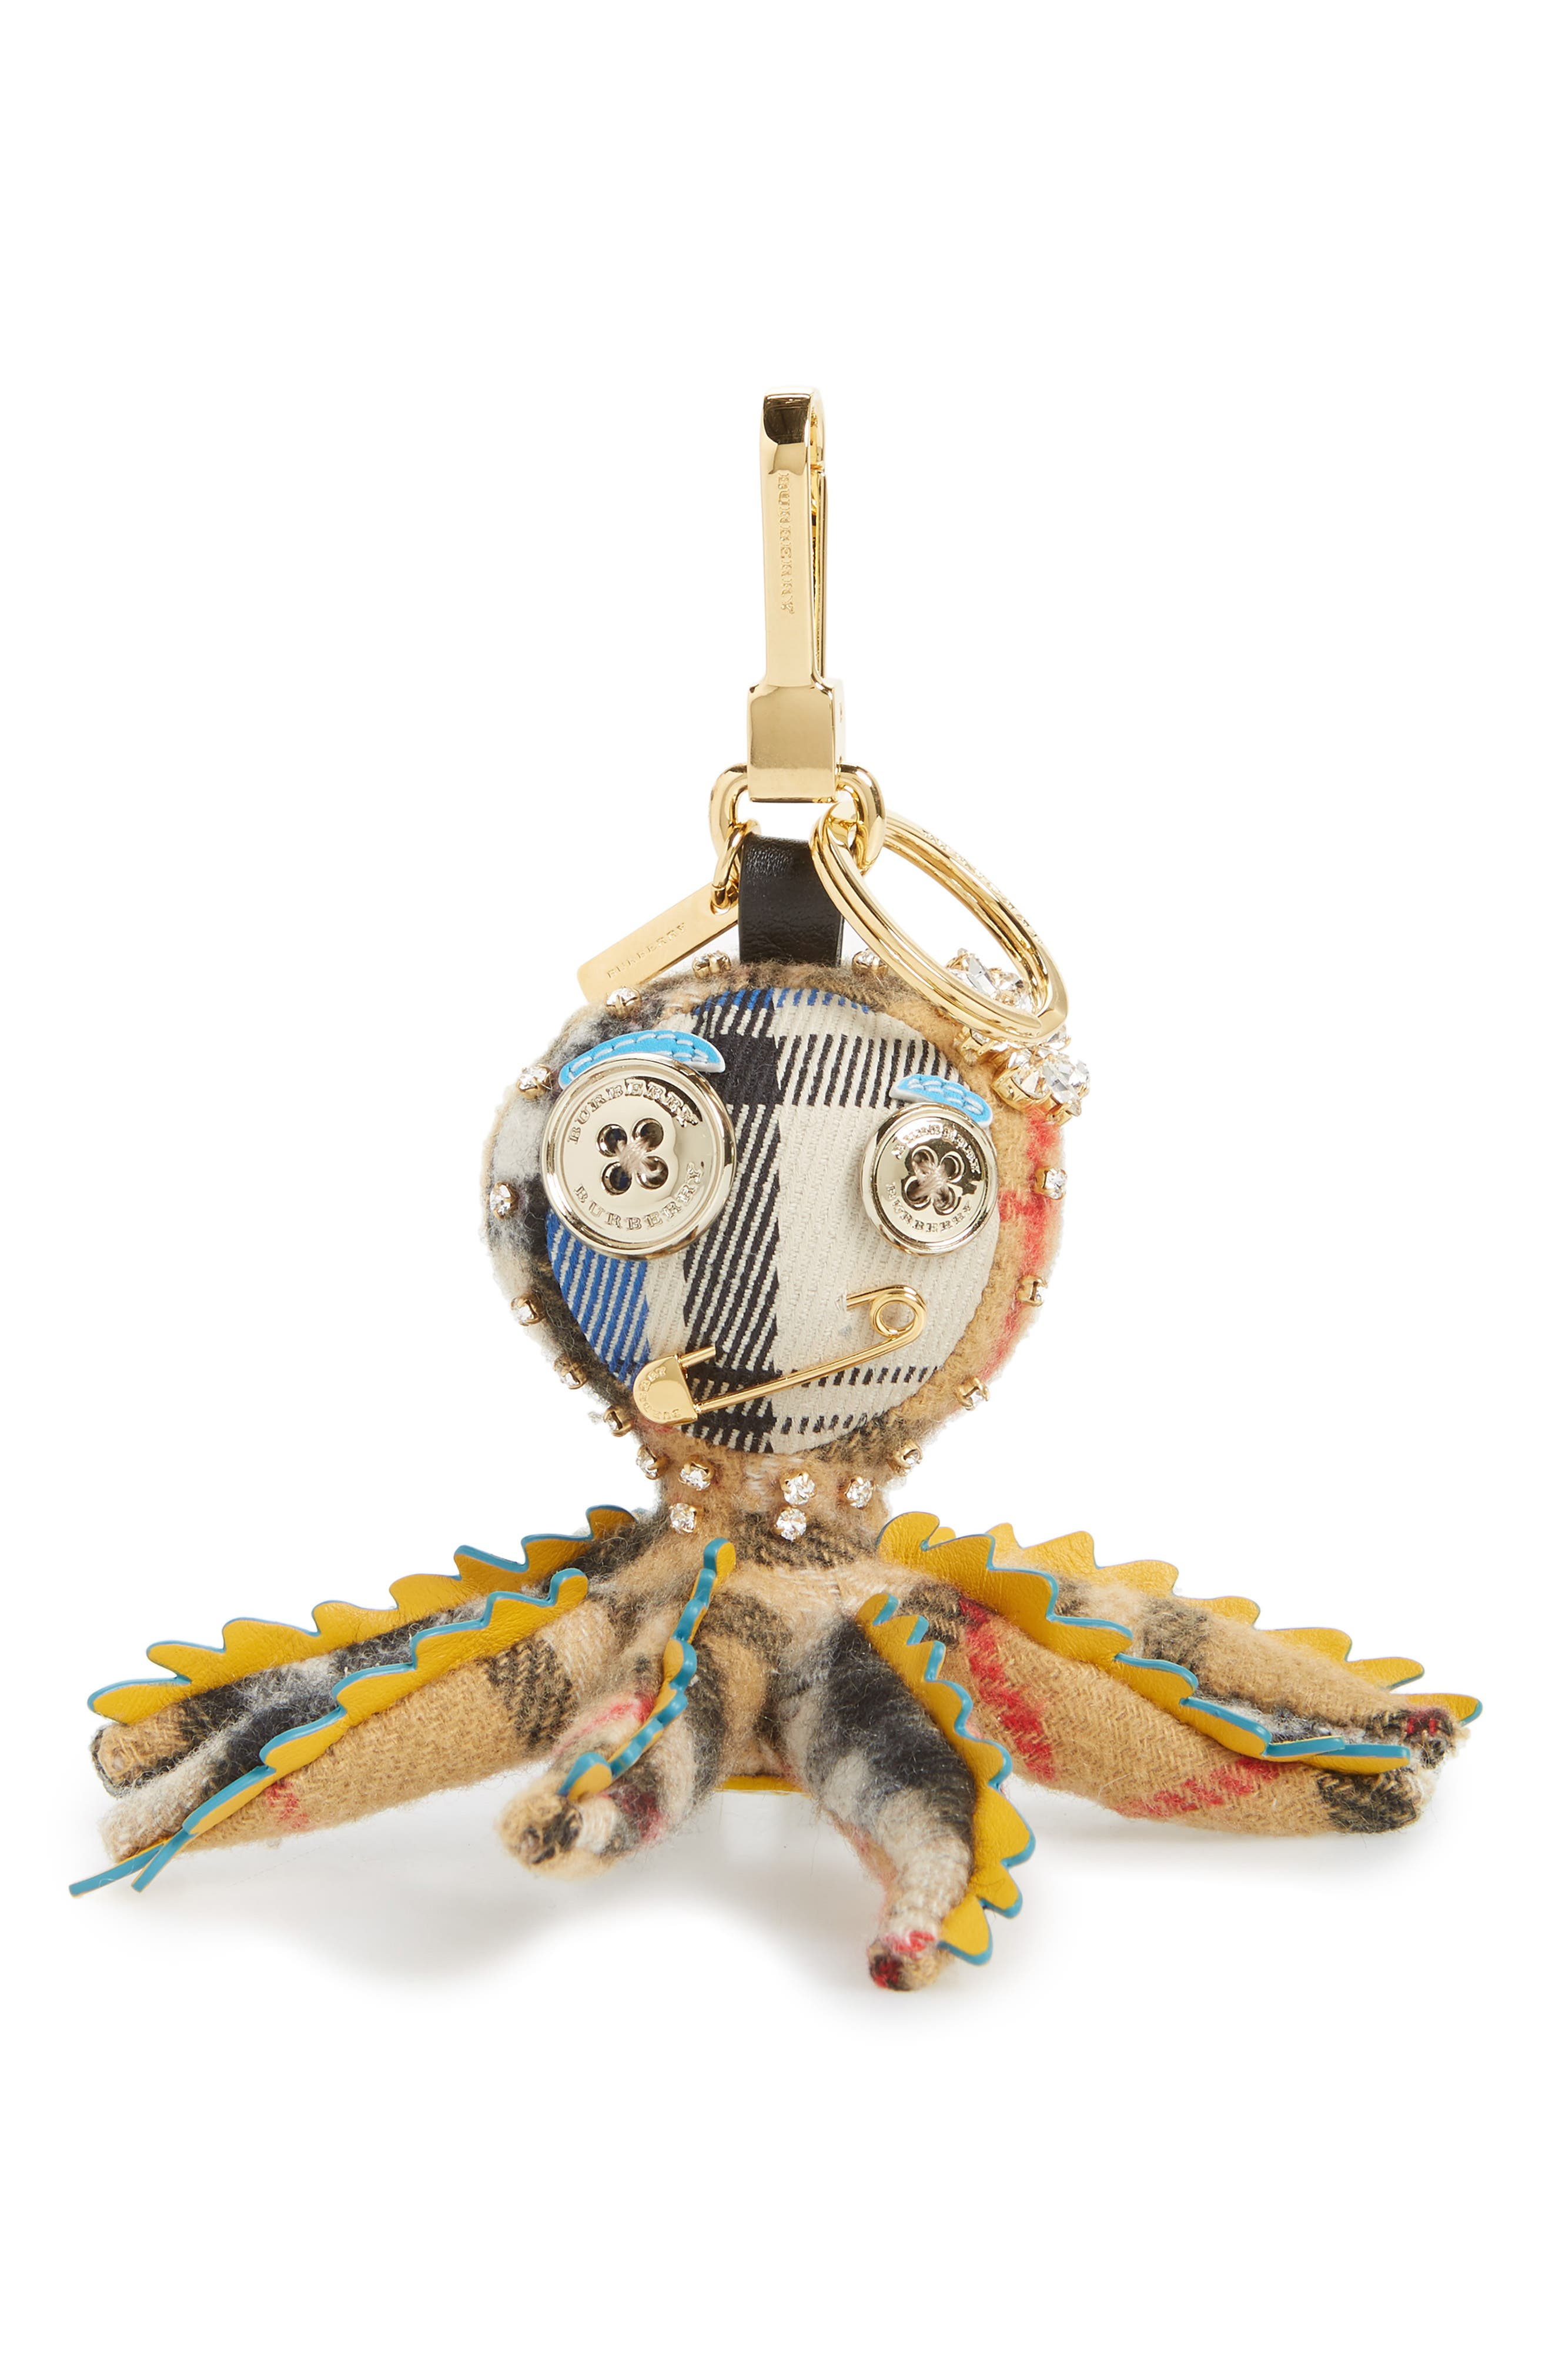 Burberry Sally the Octopus Cashmere Bag Charm